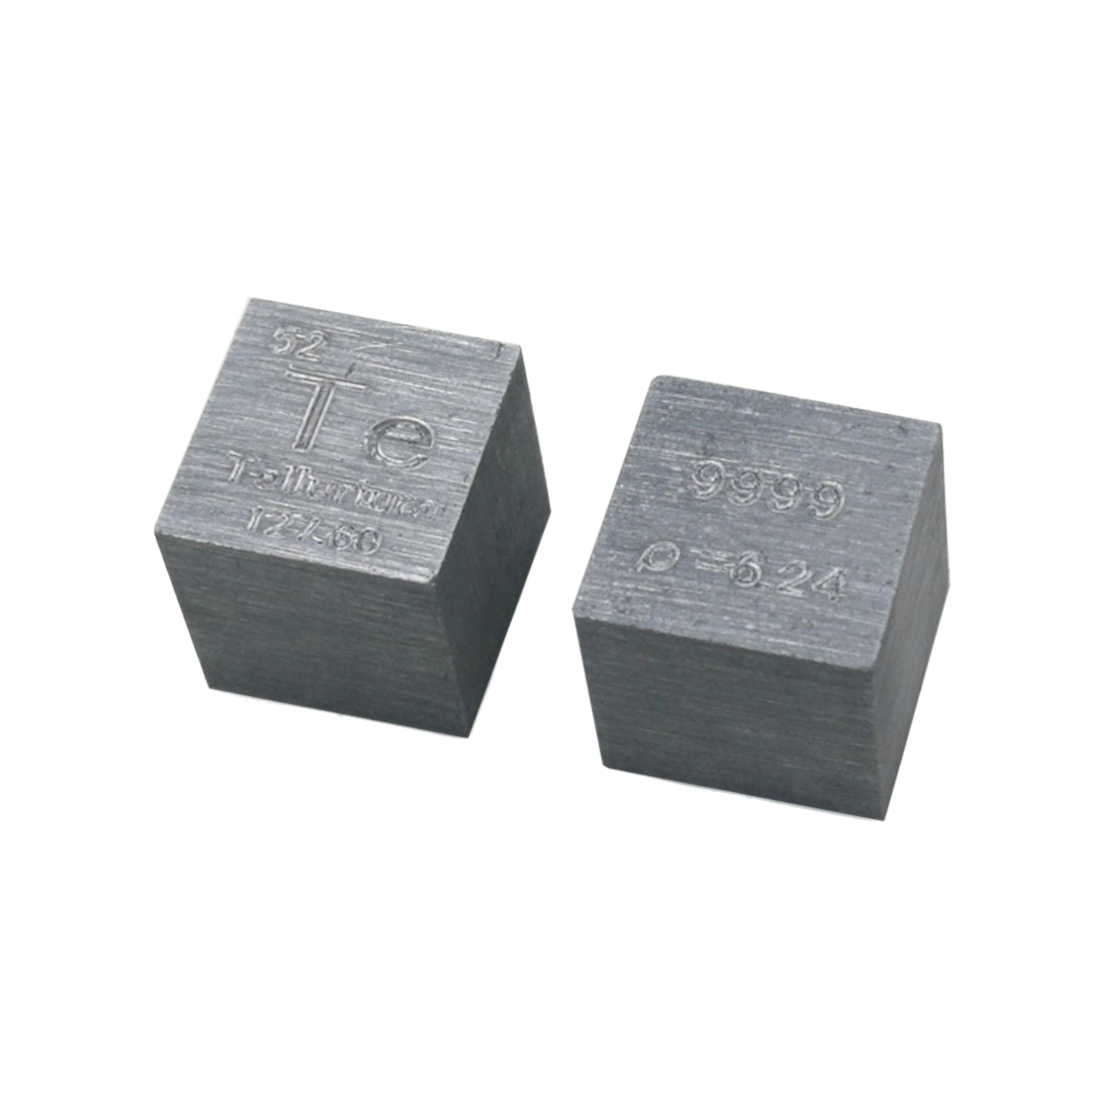 10 X 10 X 10mm (Te≥99.99%) Wiredrawing Metal Tellurium Cube Periodic Table Of Elements Cube DIY Home Crafts Display Science